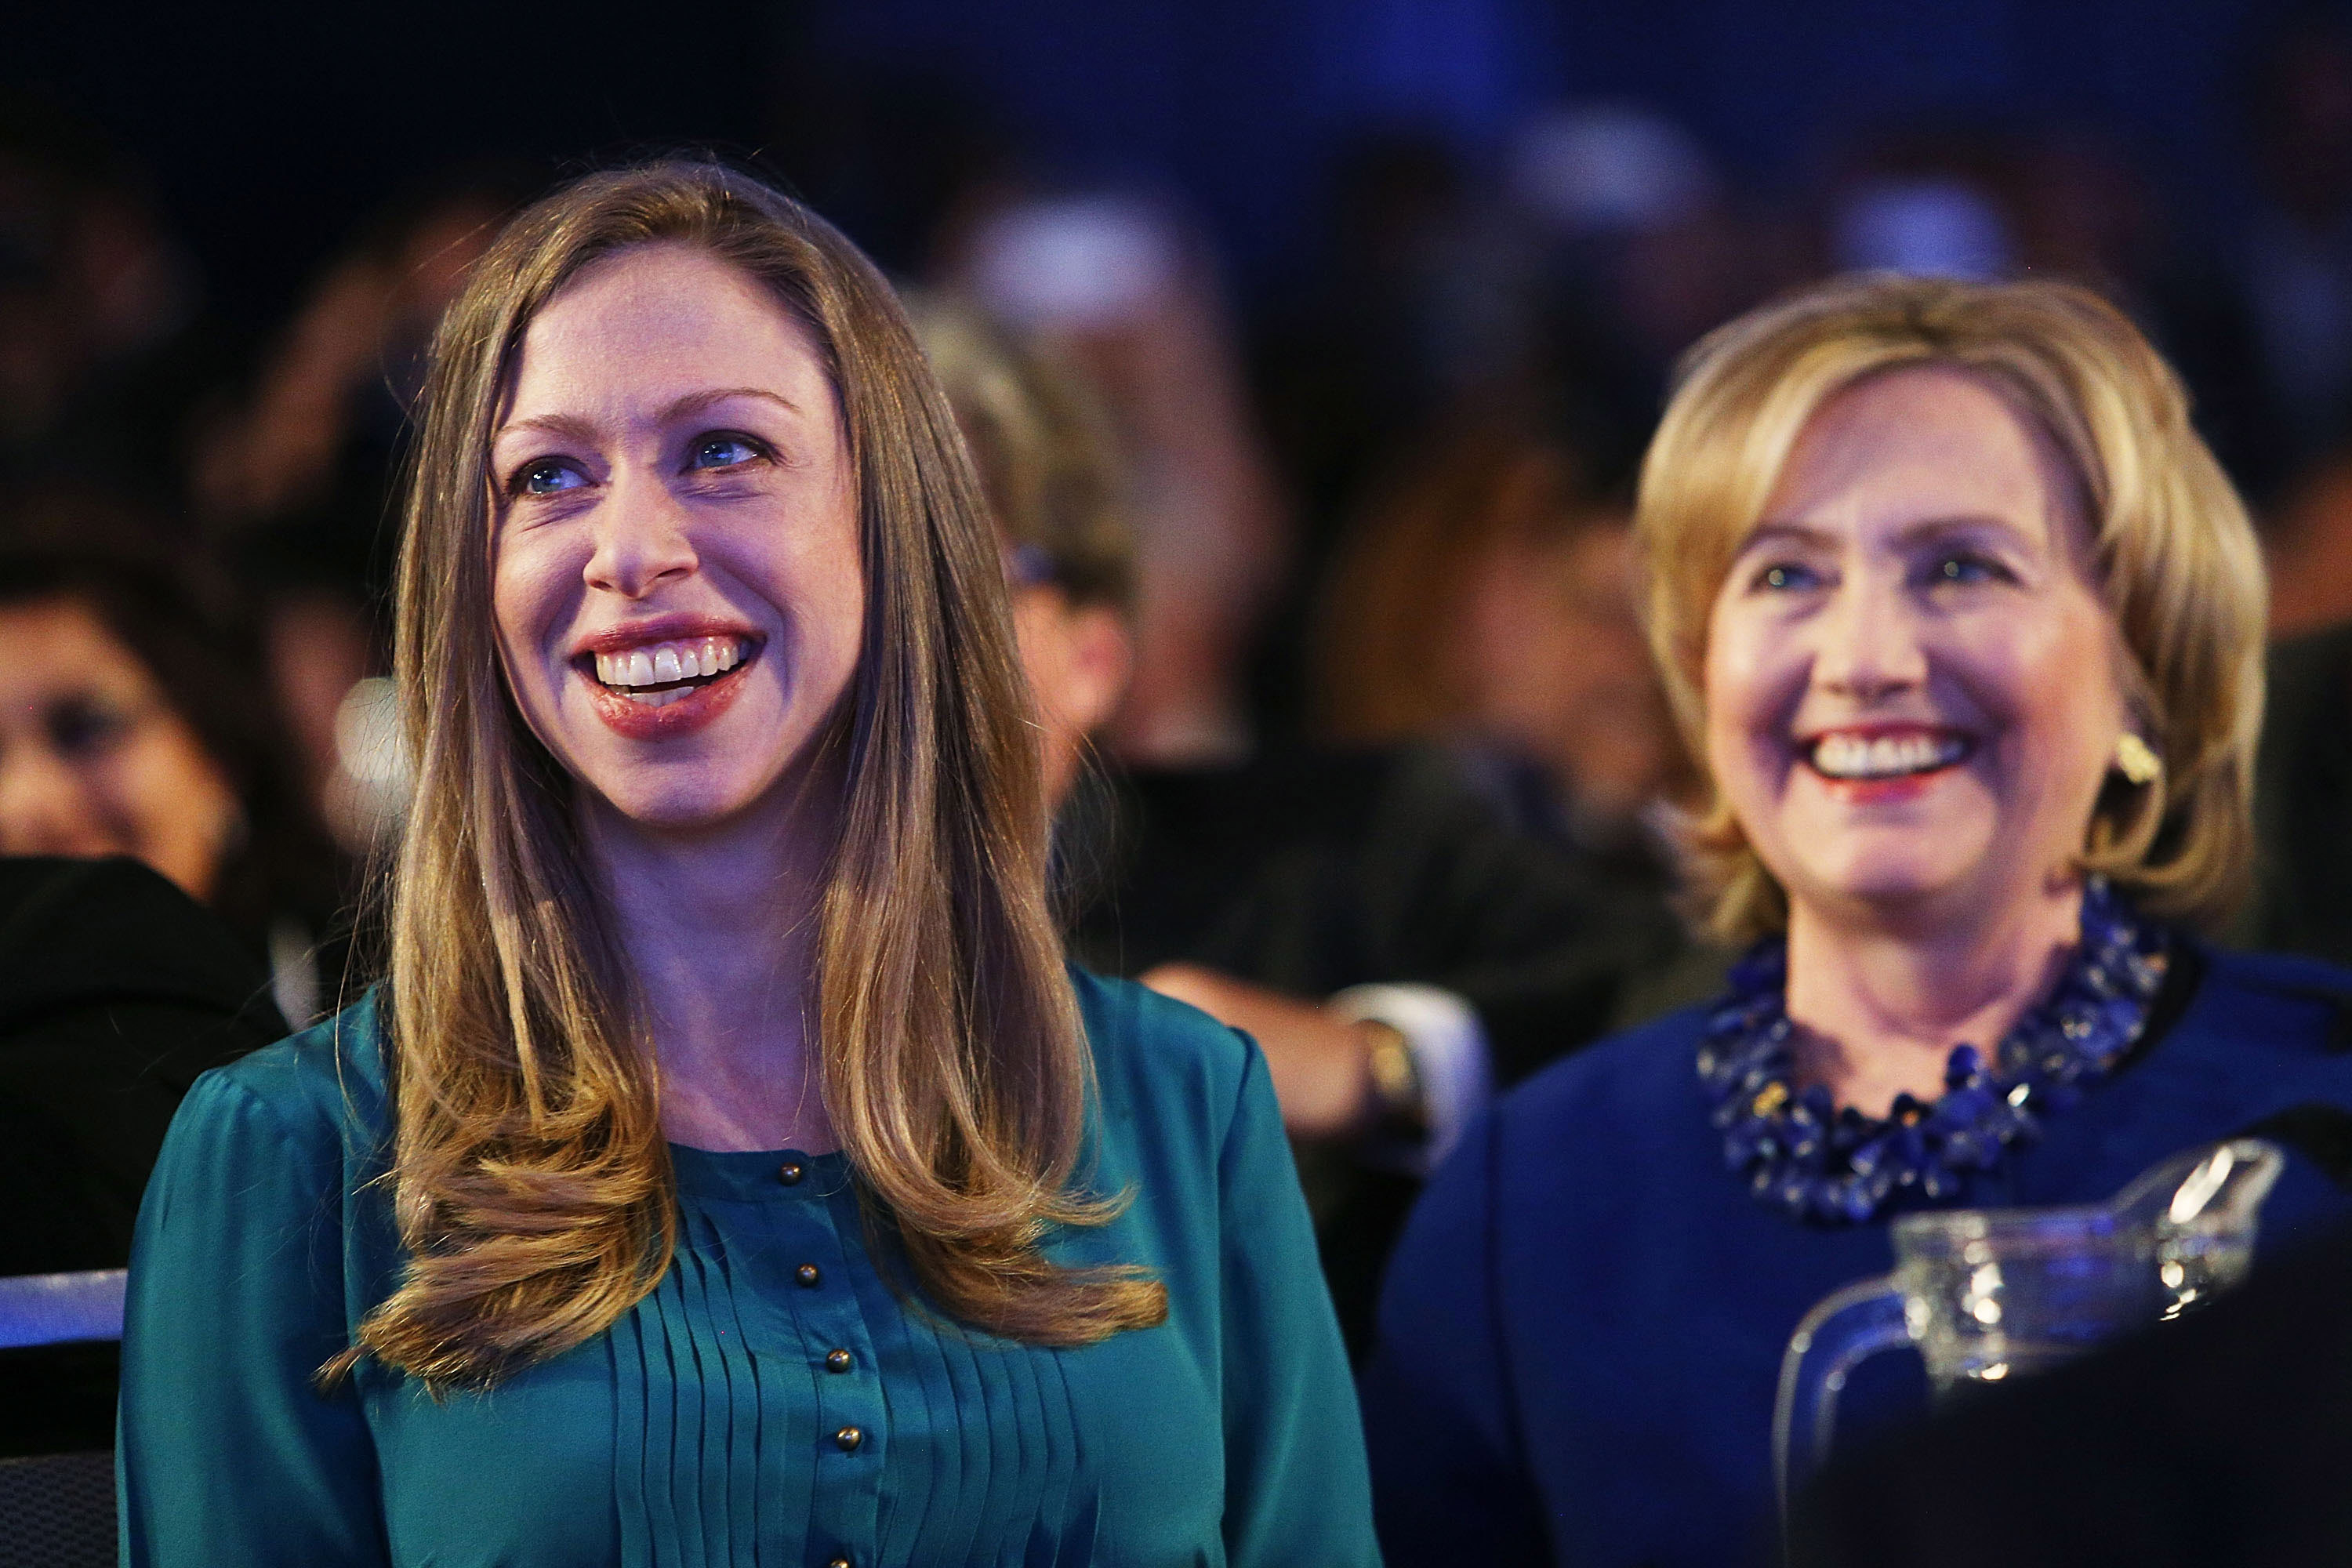 Former U.S. Secretary of State Hillary Clinton and daughter Chelsea Clinton are viewed in the audience as U.S. President Barack Obama, who is in New York City for the 69th Session of the United Nations General Assembly, speaks at the Clinton Global Initiative on September 23, 2014 in New York City.